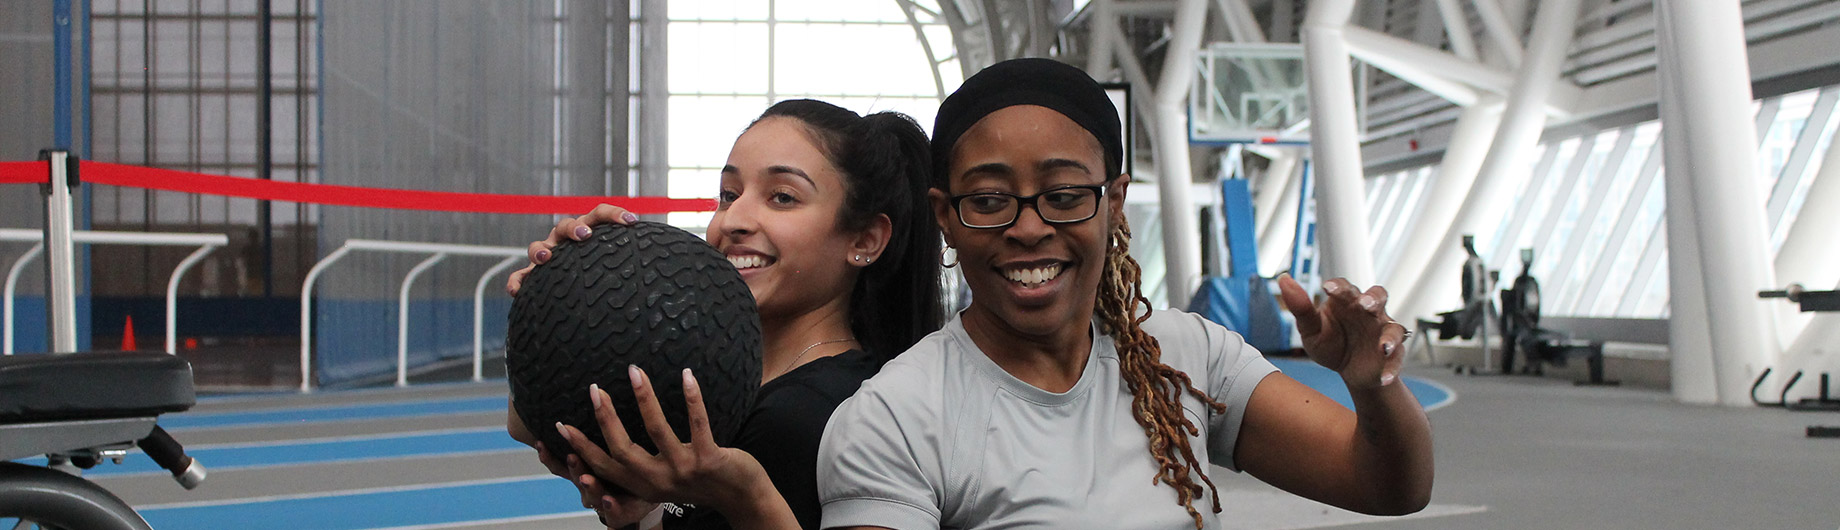 Two female members working out together with medicine ball